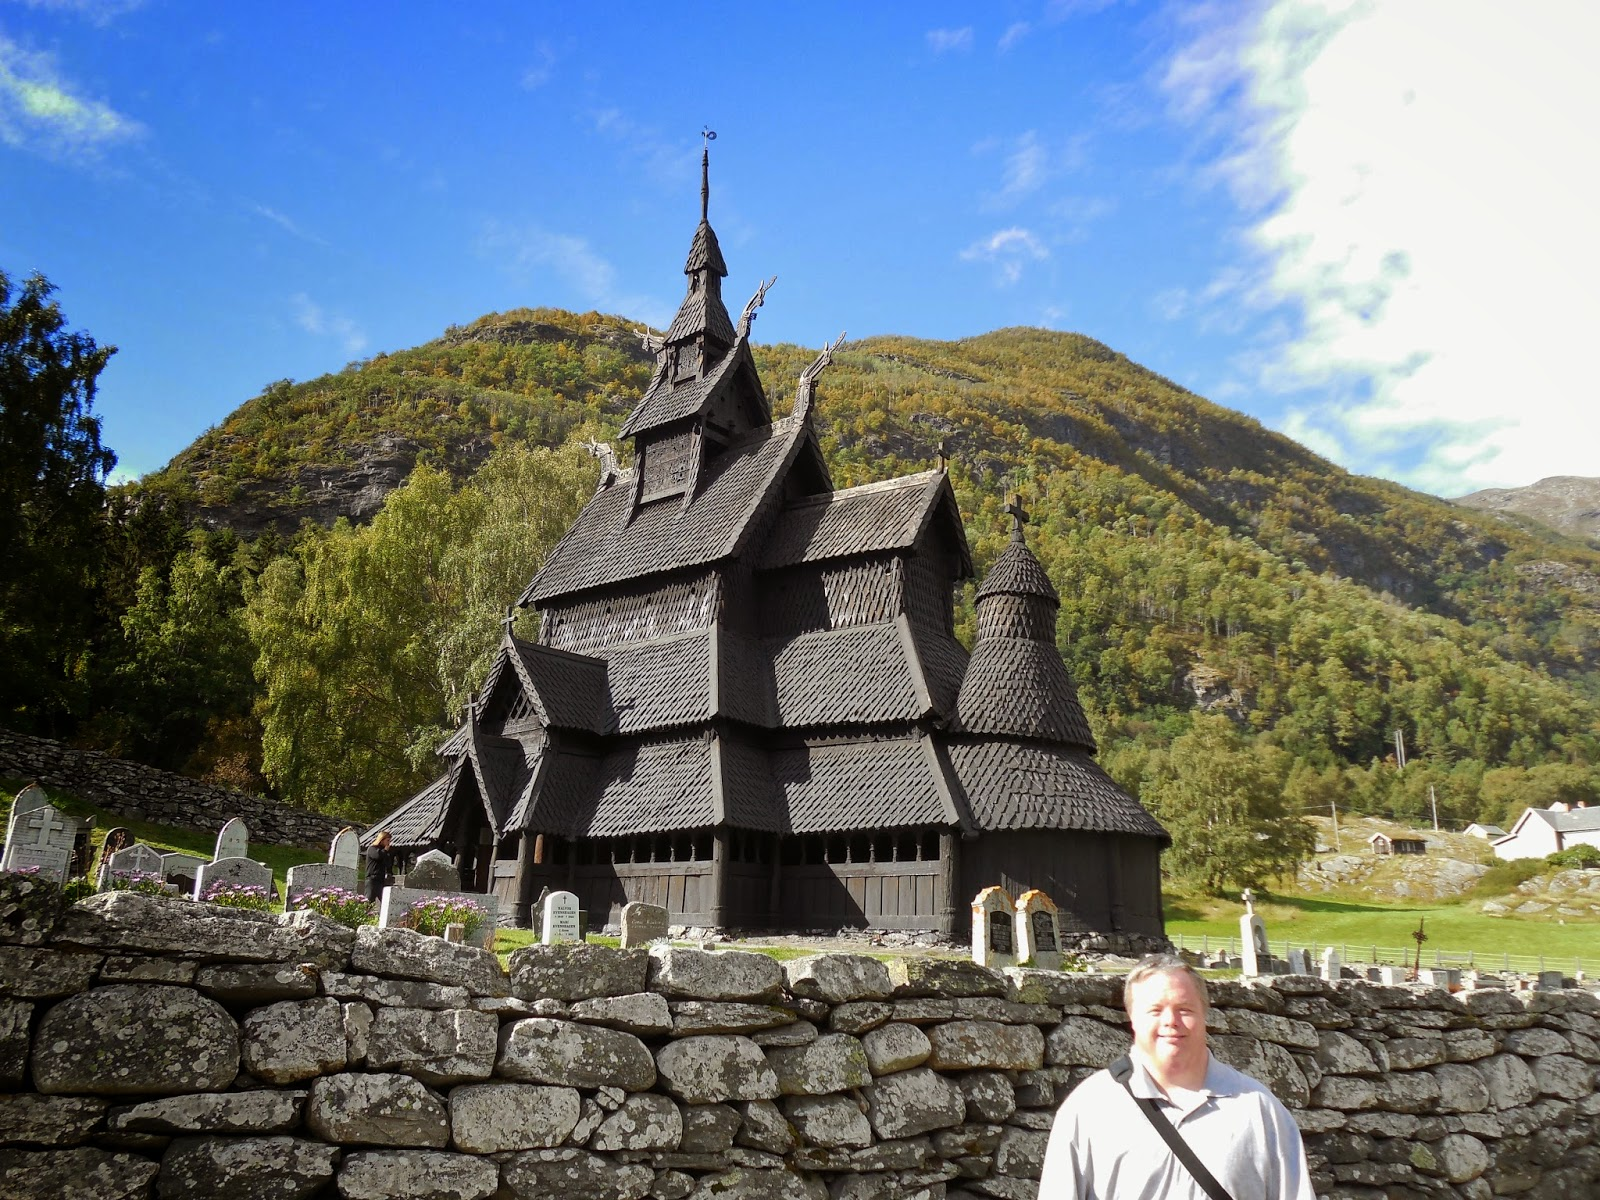 borgund stave church roof dragons scale shingles roosters in